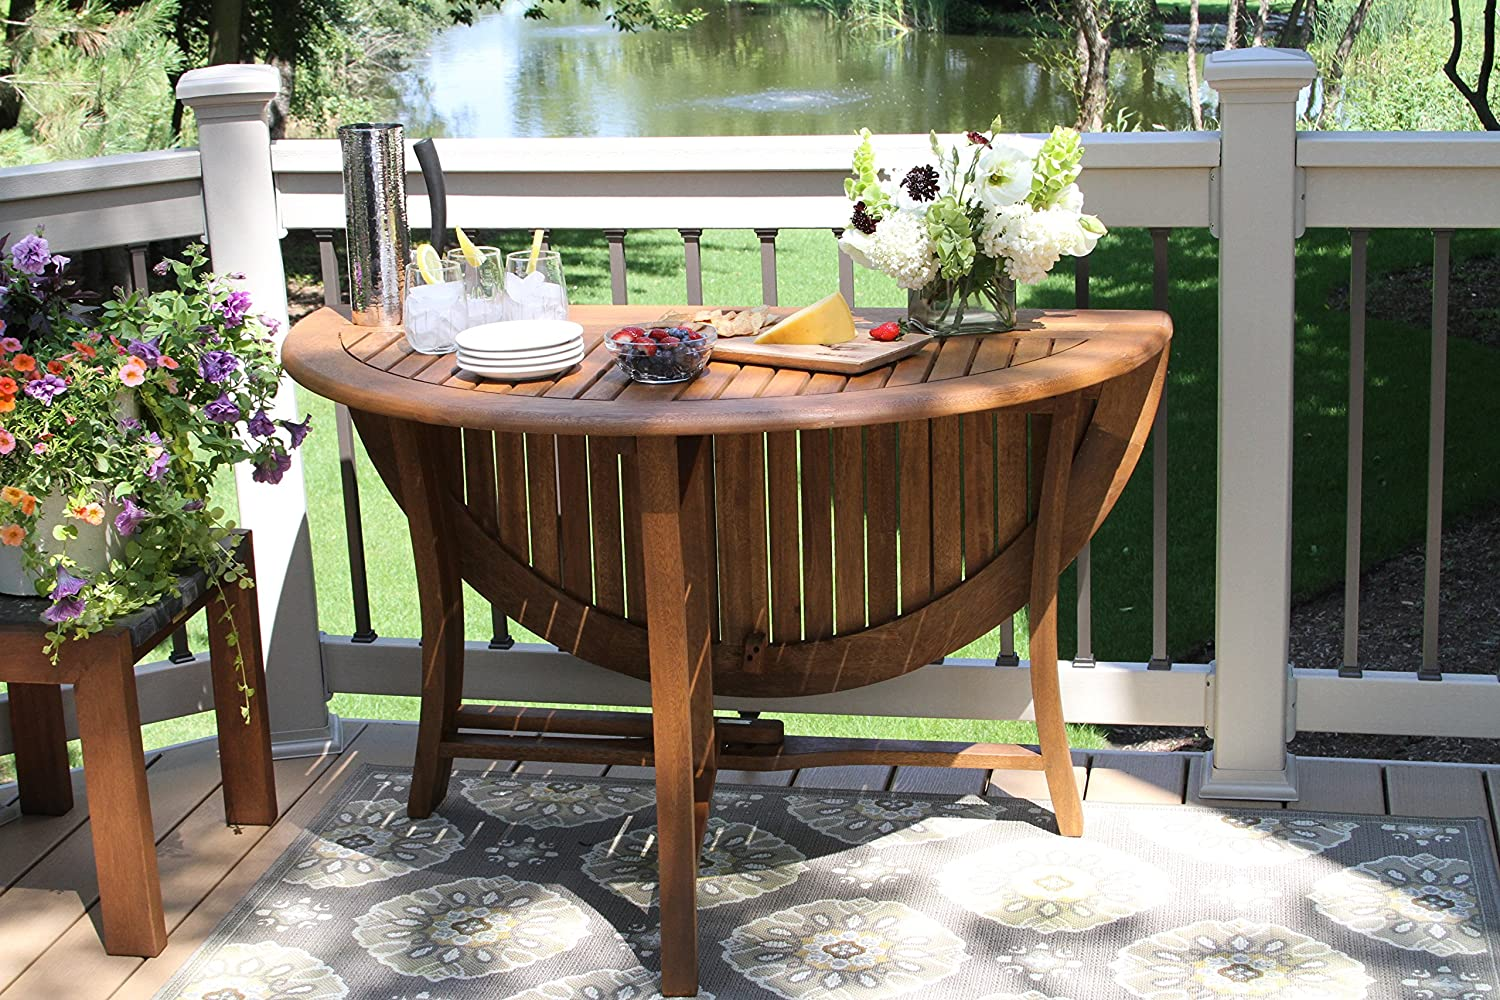 Amazoncom Outdoor Interiors Round Folding Table 48Inch Brown